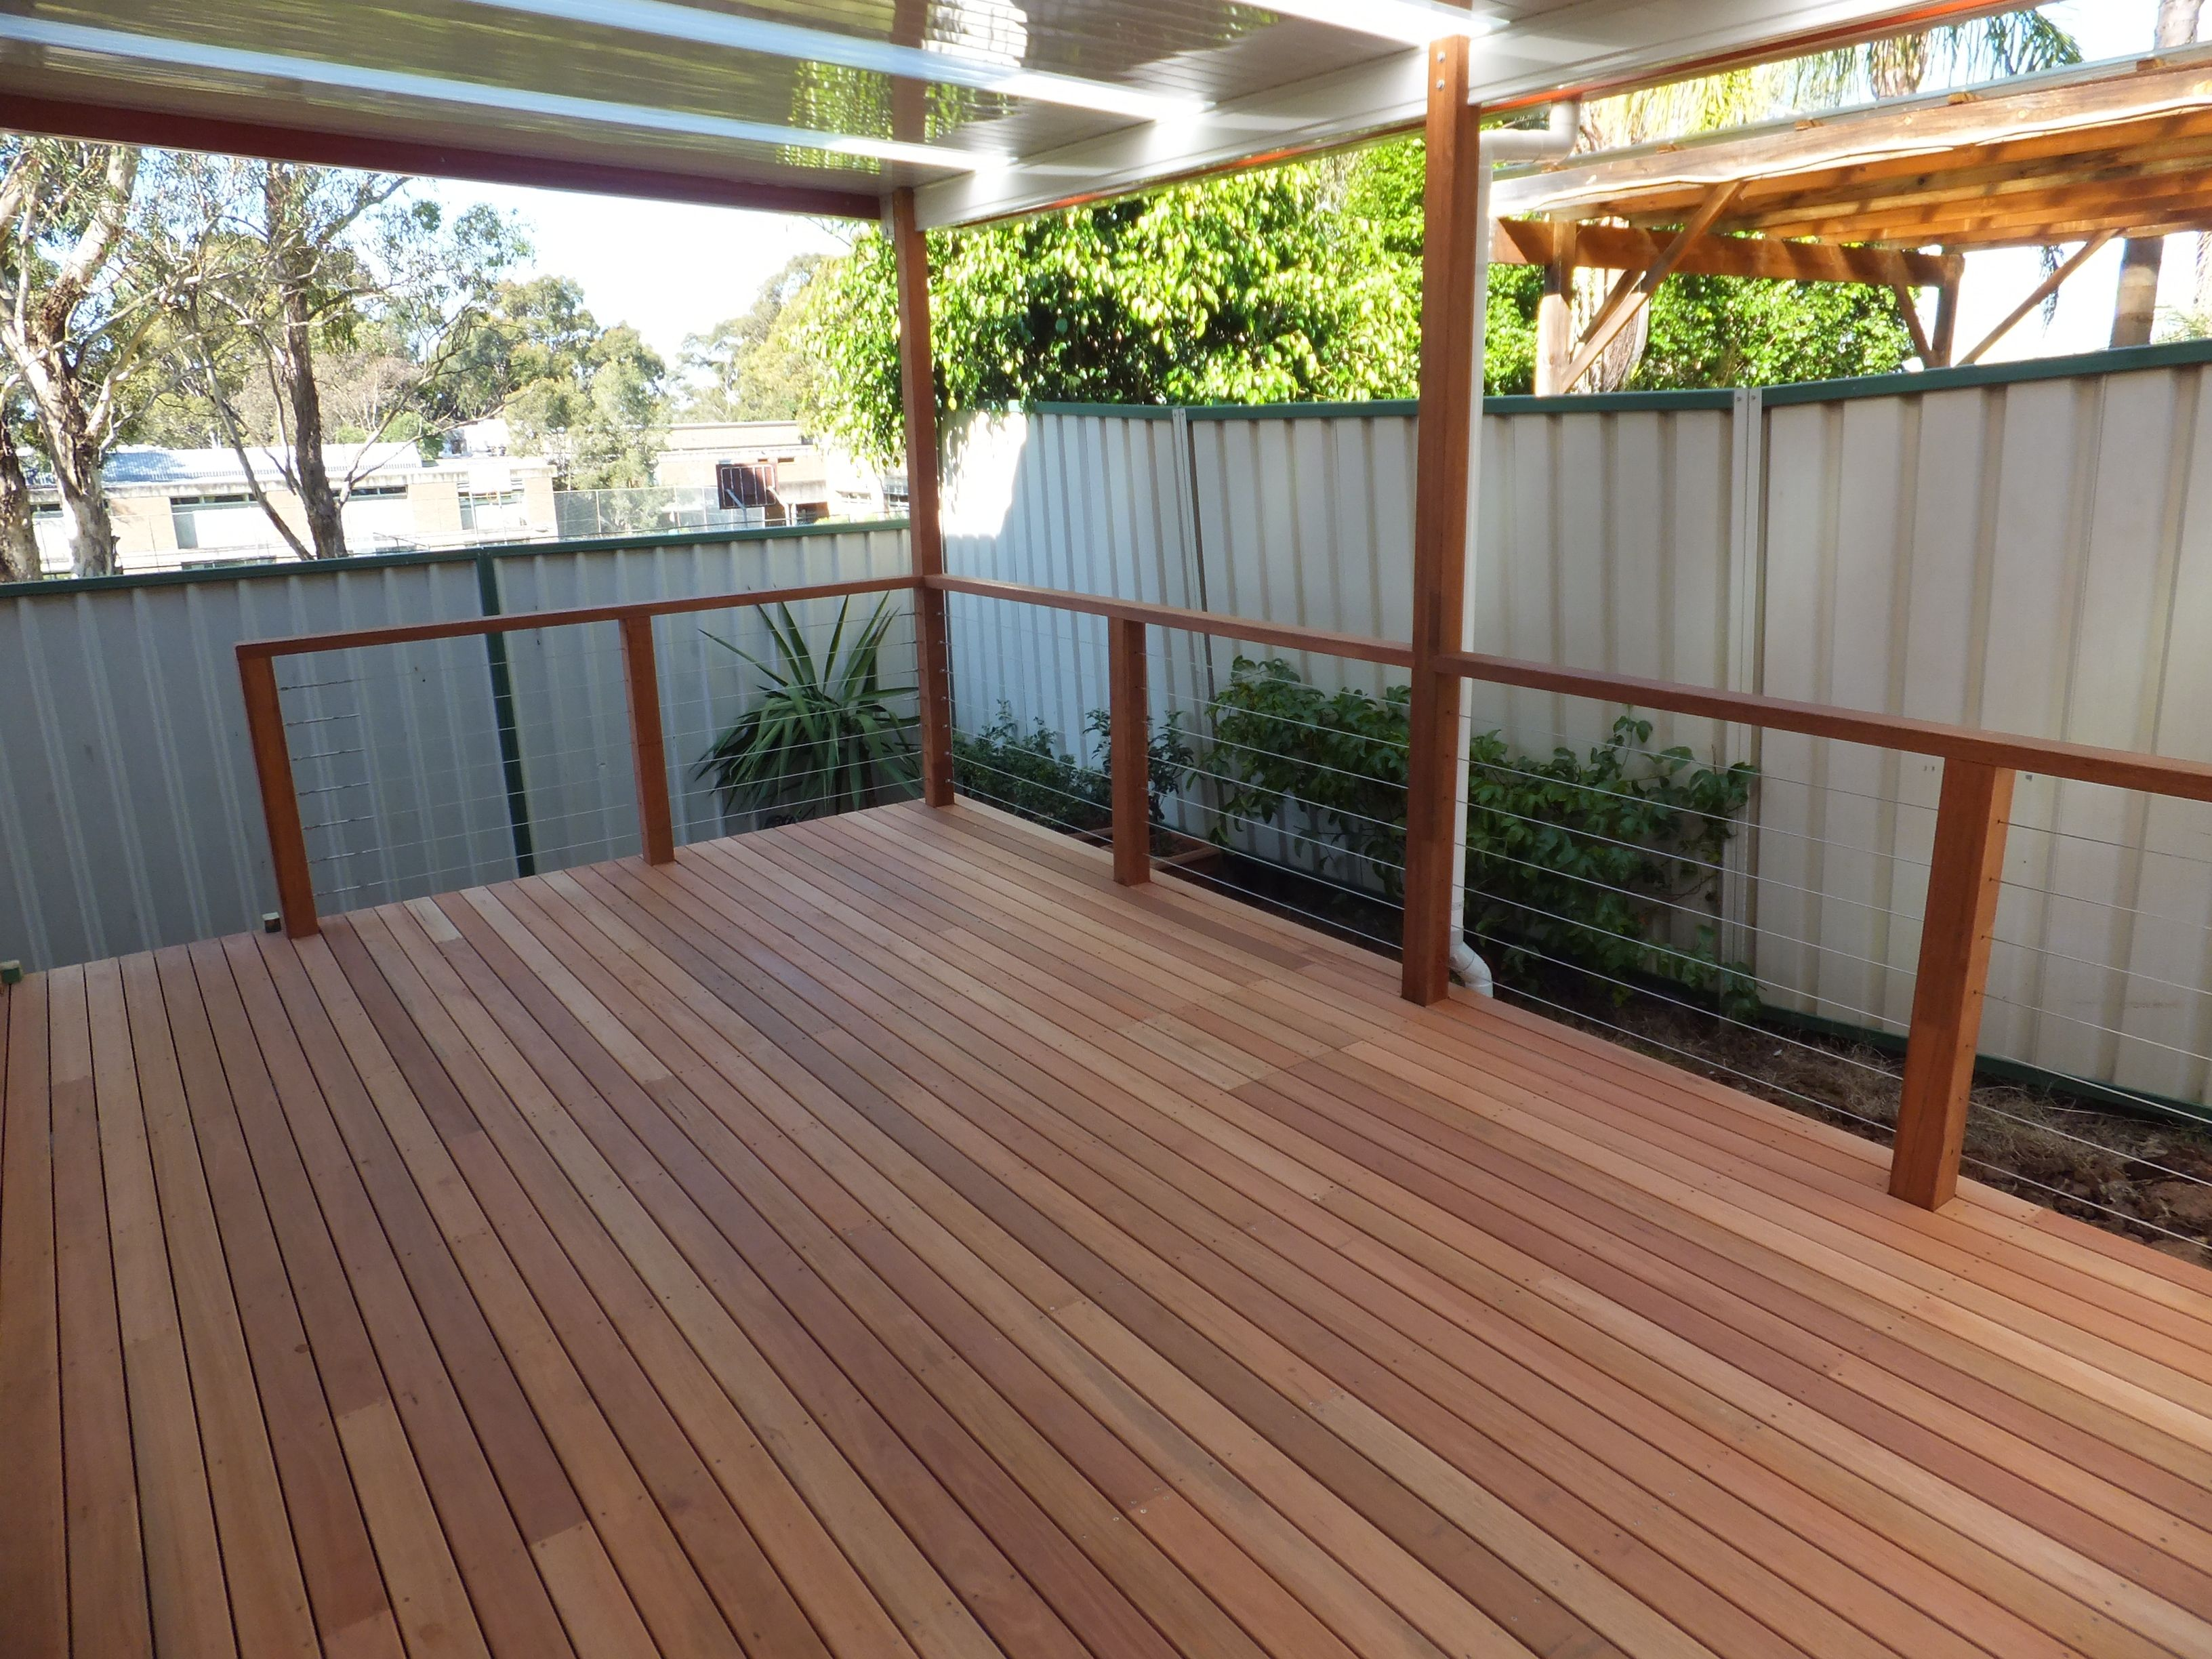 Sam S Decks And Pergolas Guarantee You The Quality And Professional Standards Of Timber Decking And Pergolas And Many Othe Build Wood Deck Backyard Inspo Deck